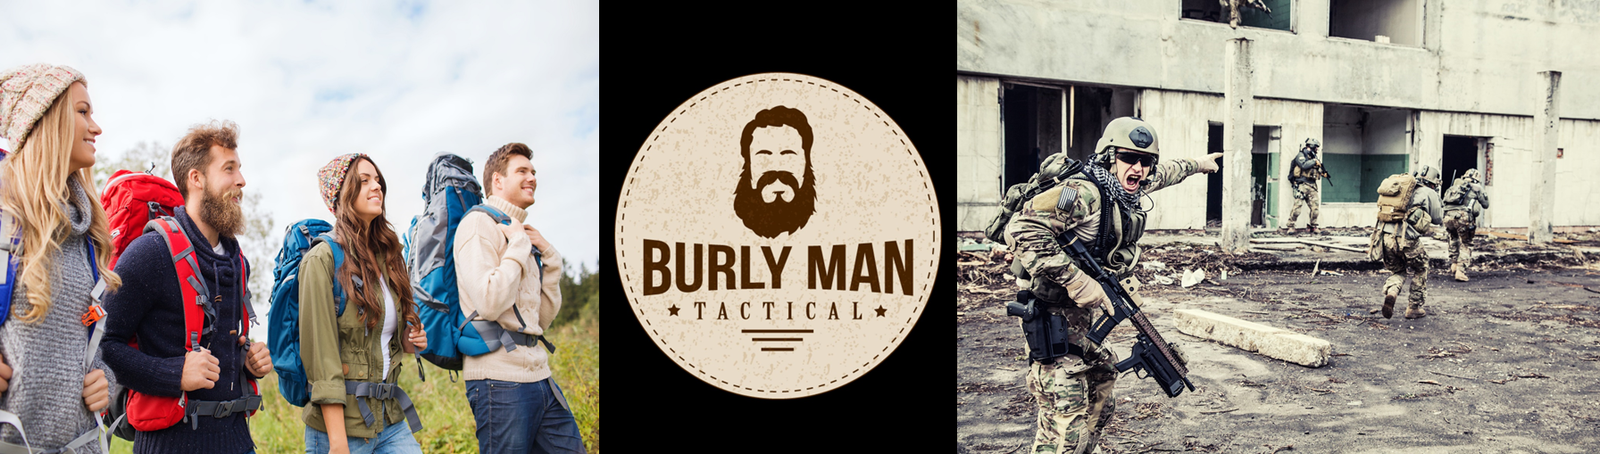 Burly Man Tactical Store